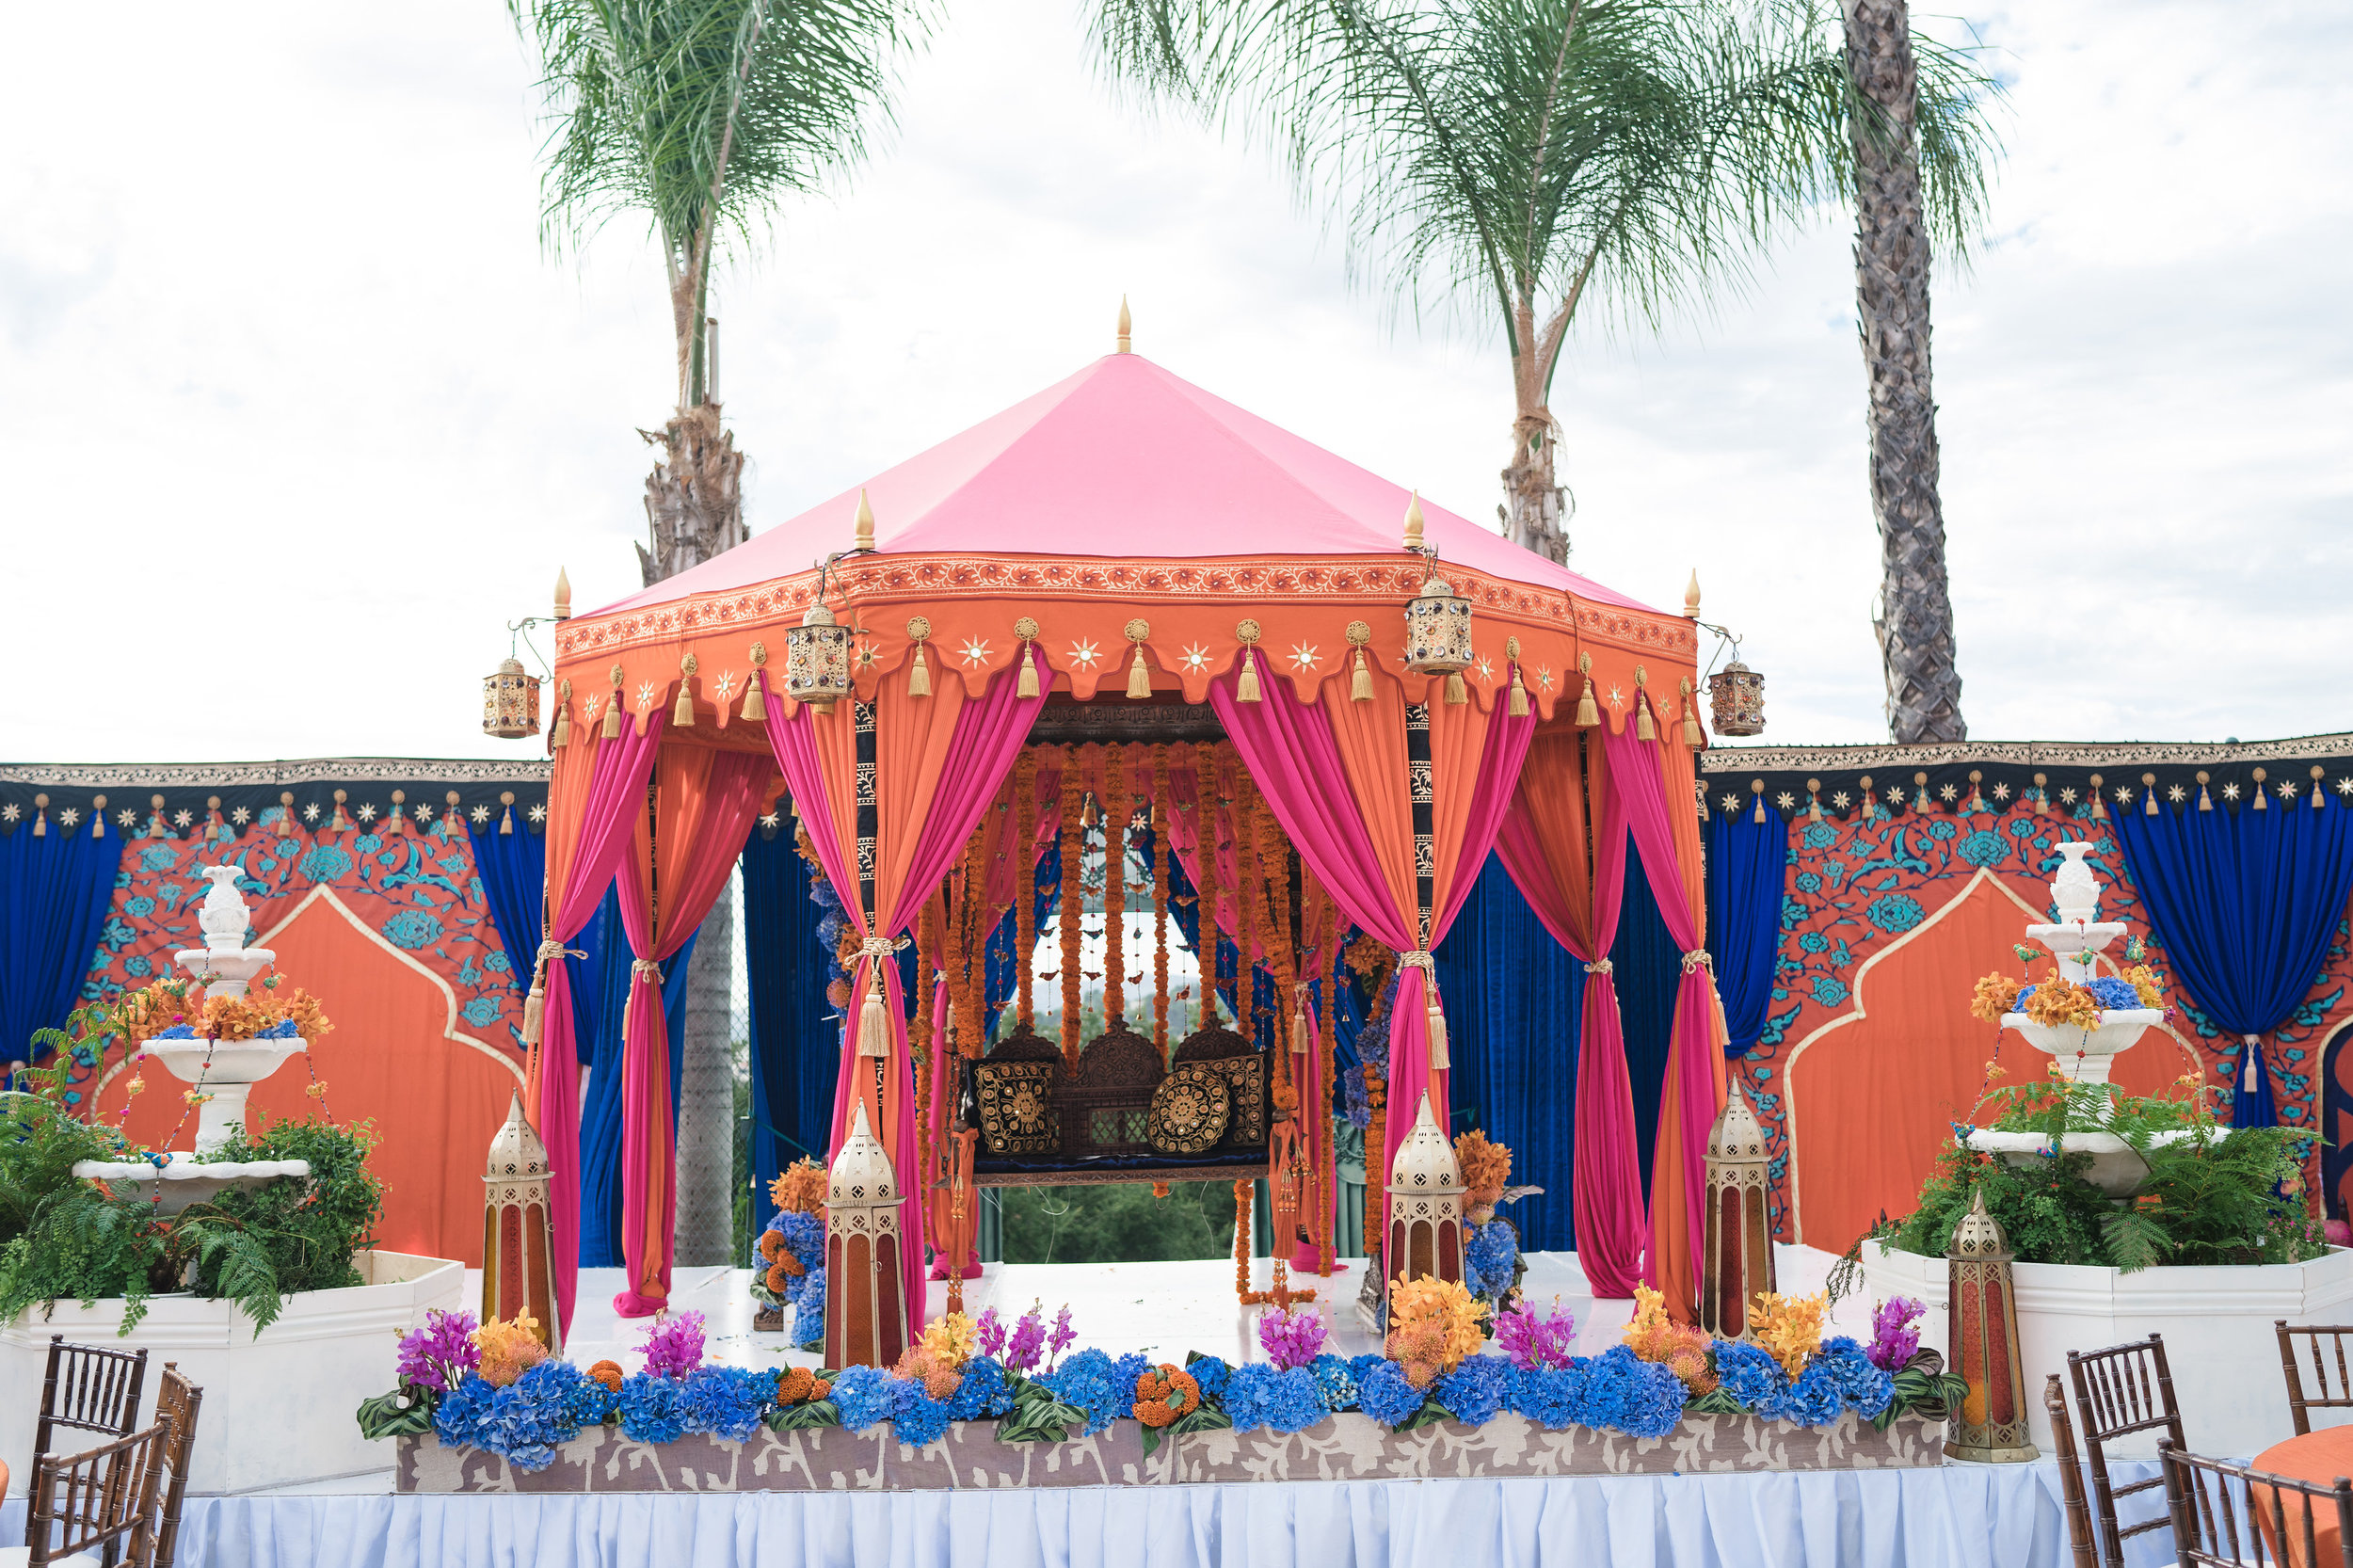 Premier indian weddings tents for mehndi, sangeet, wedding ceremony, or as an elegant mandap